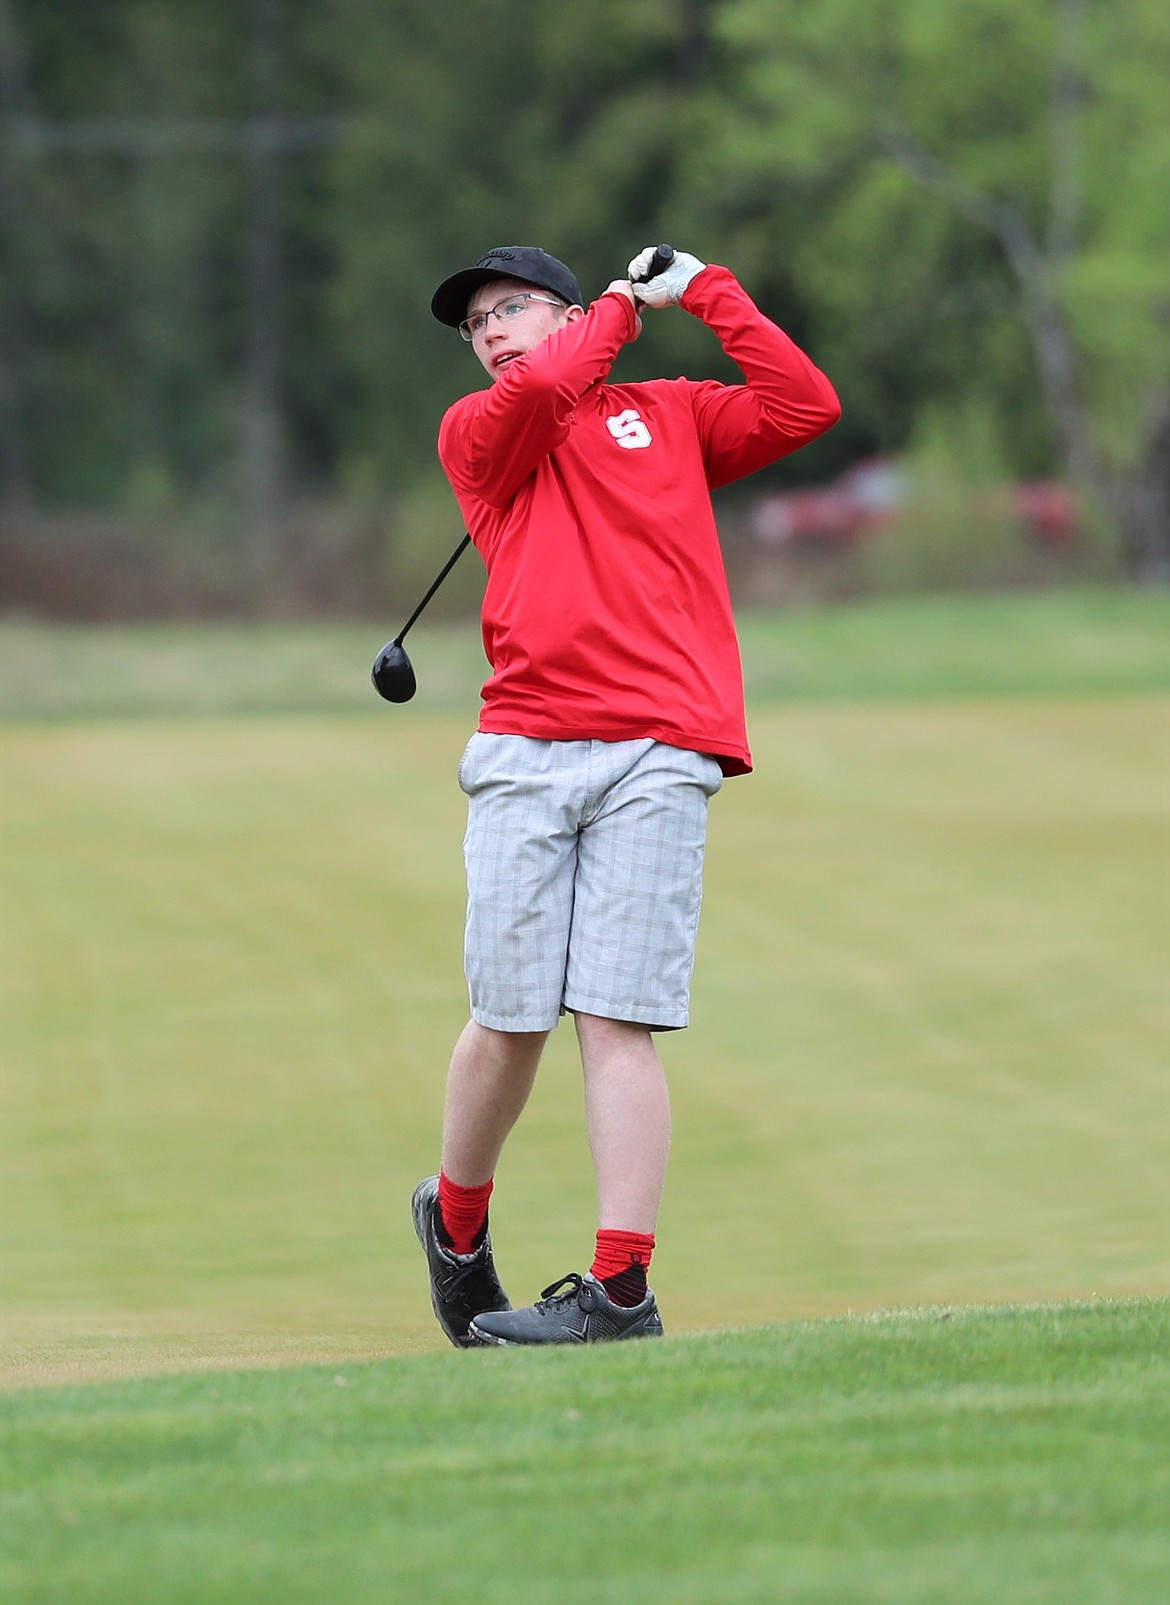 Dawson Owens holds his follow through on a shot from the fairway on Monday.